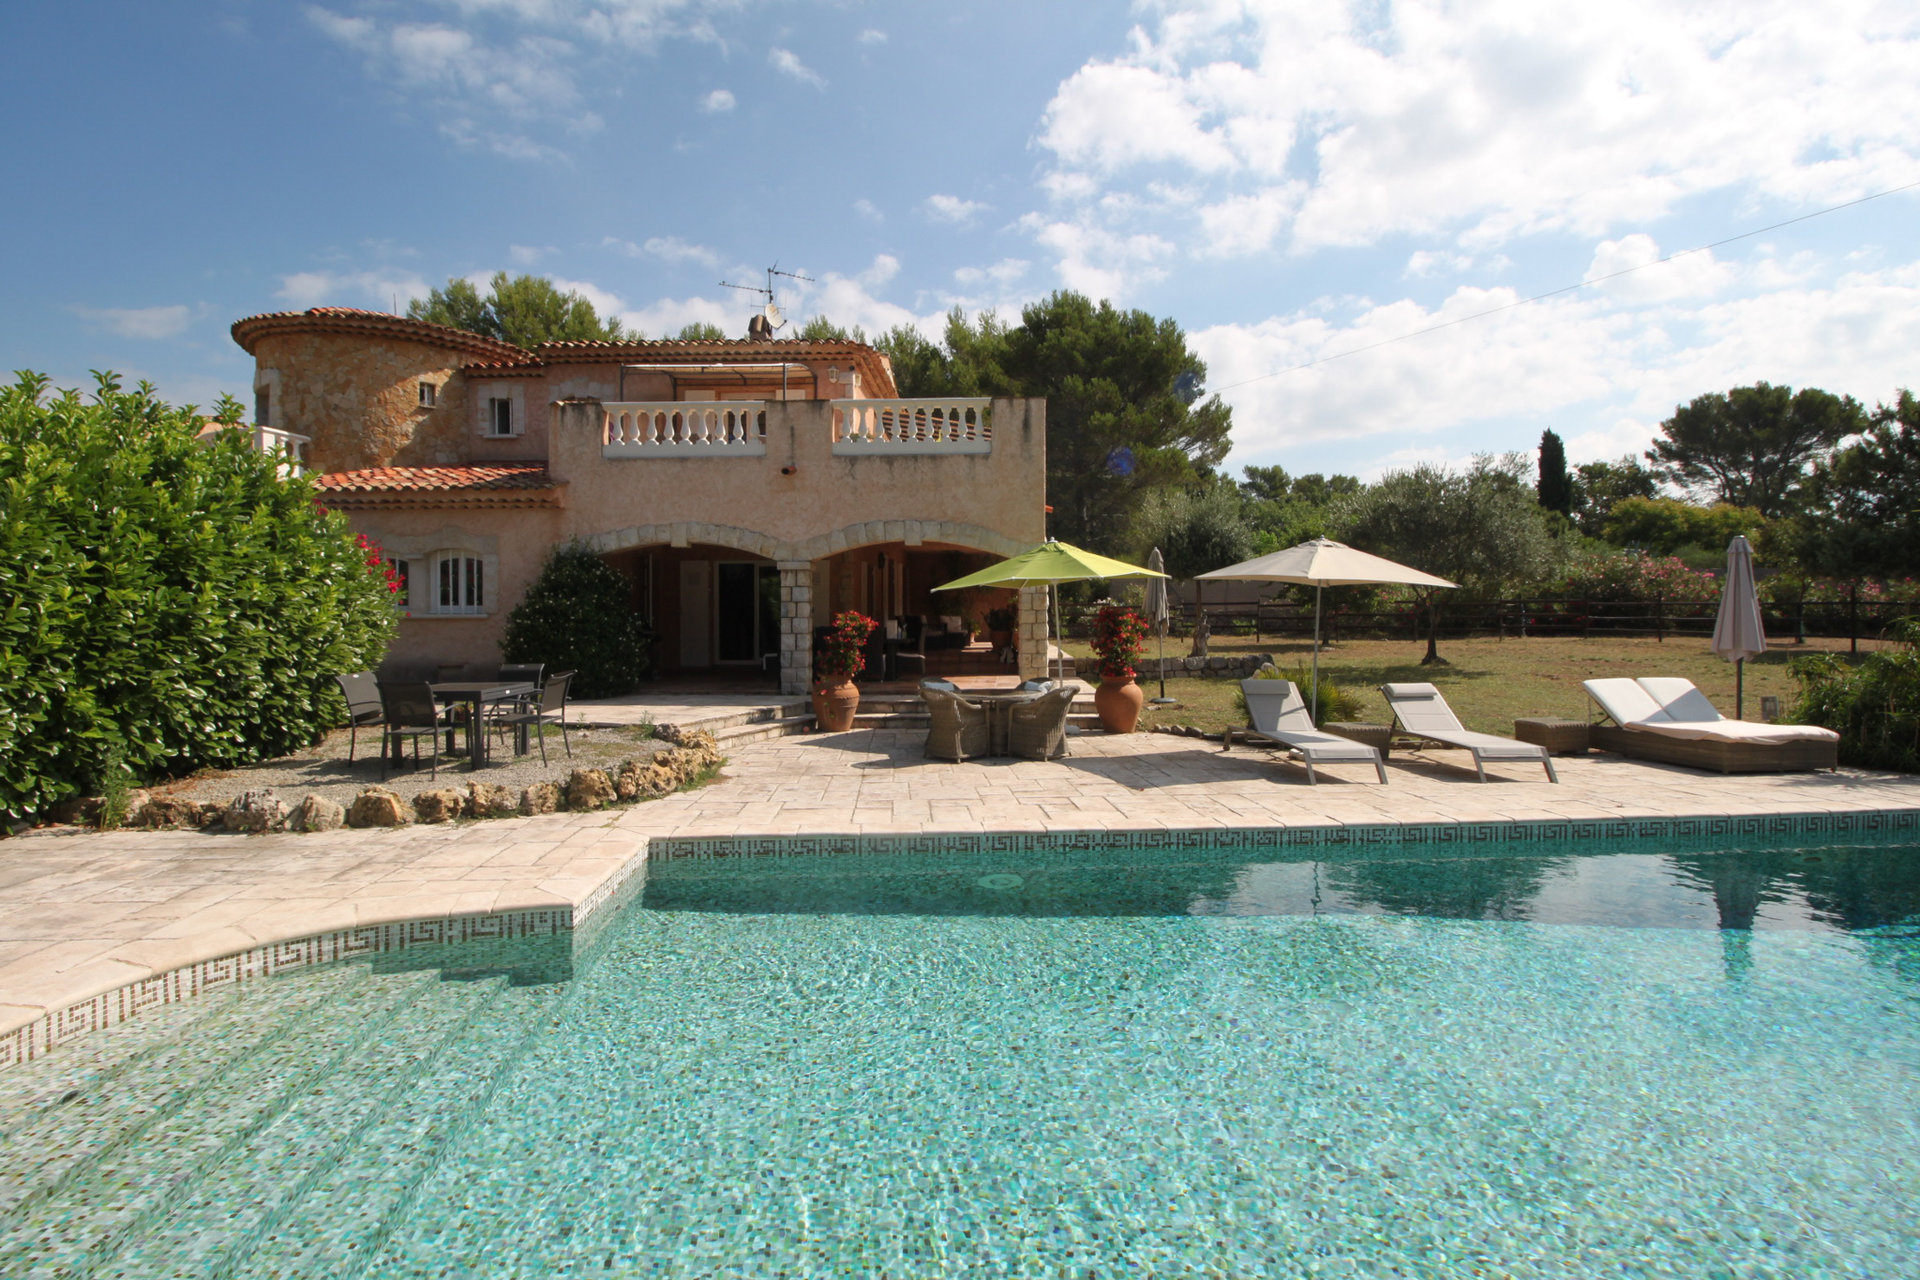 Caracter property with land, pool and tennis